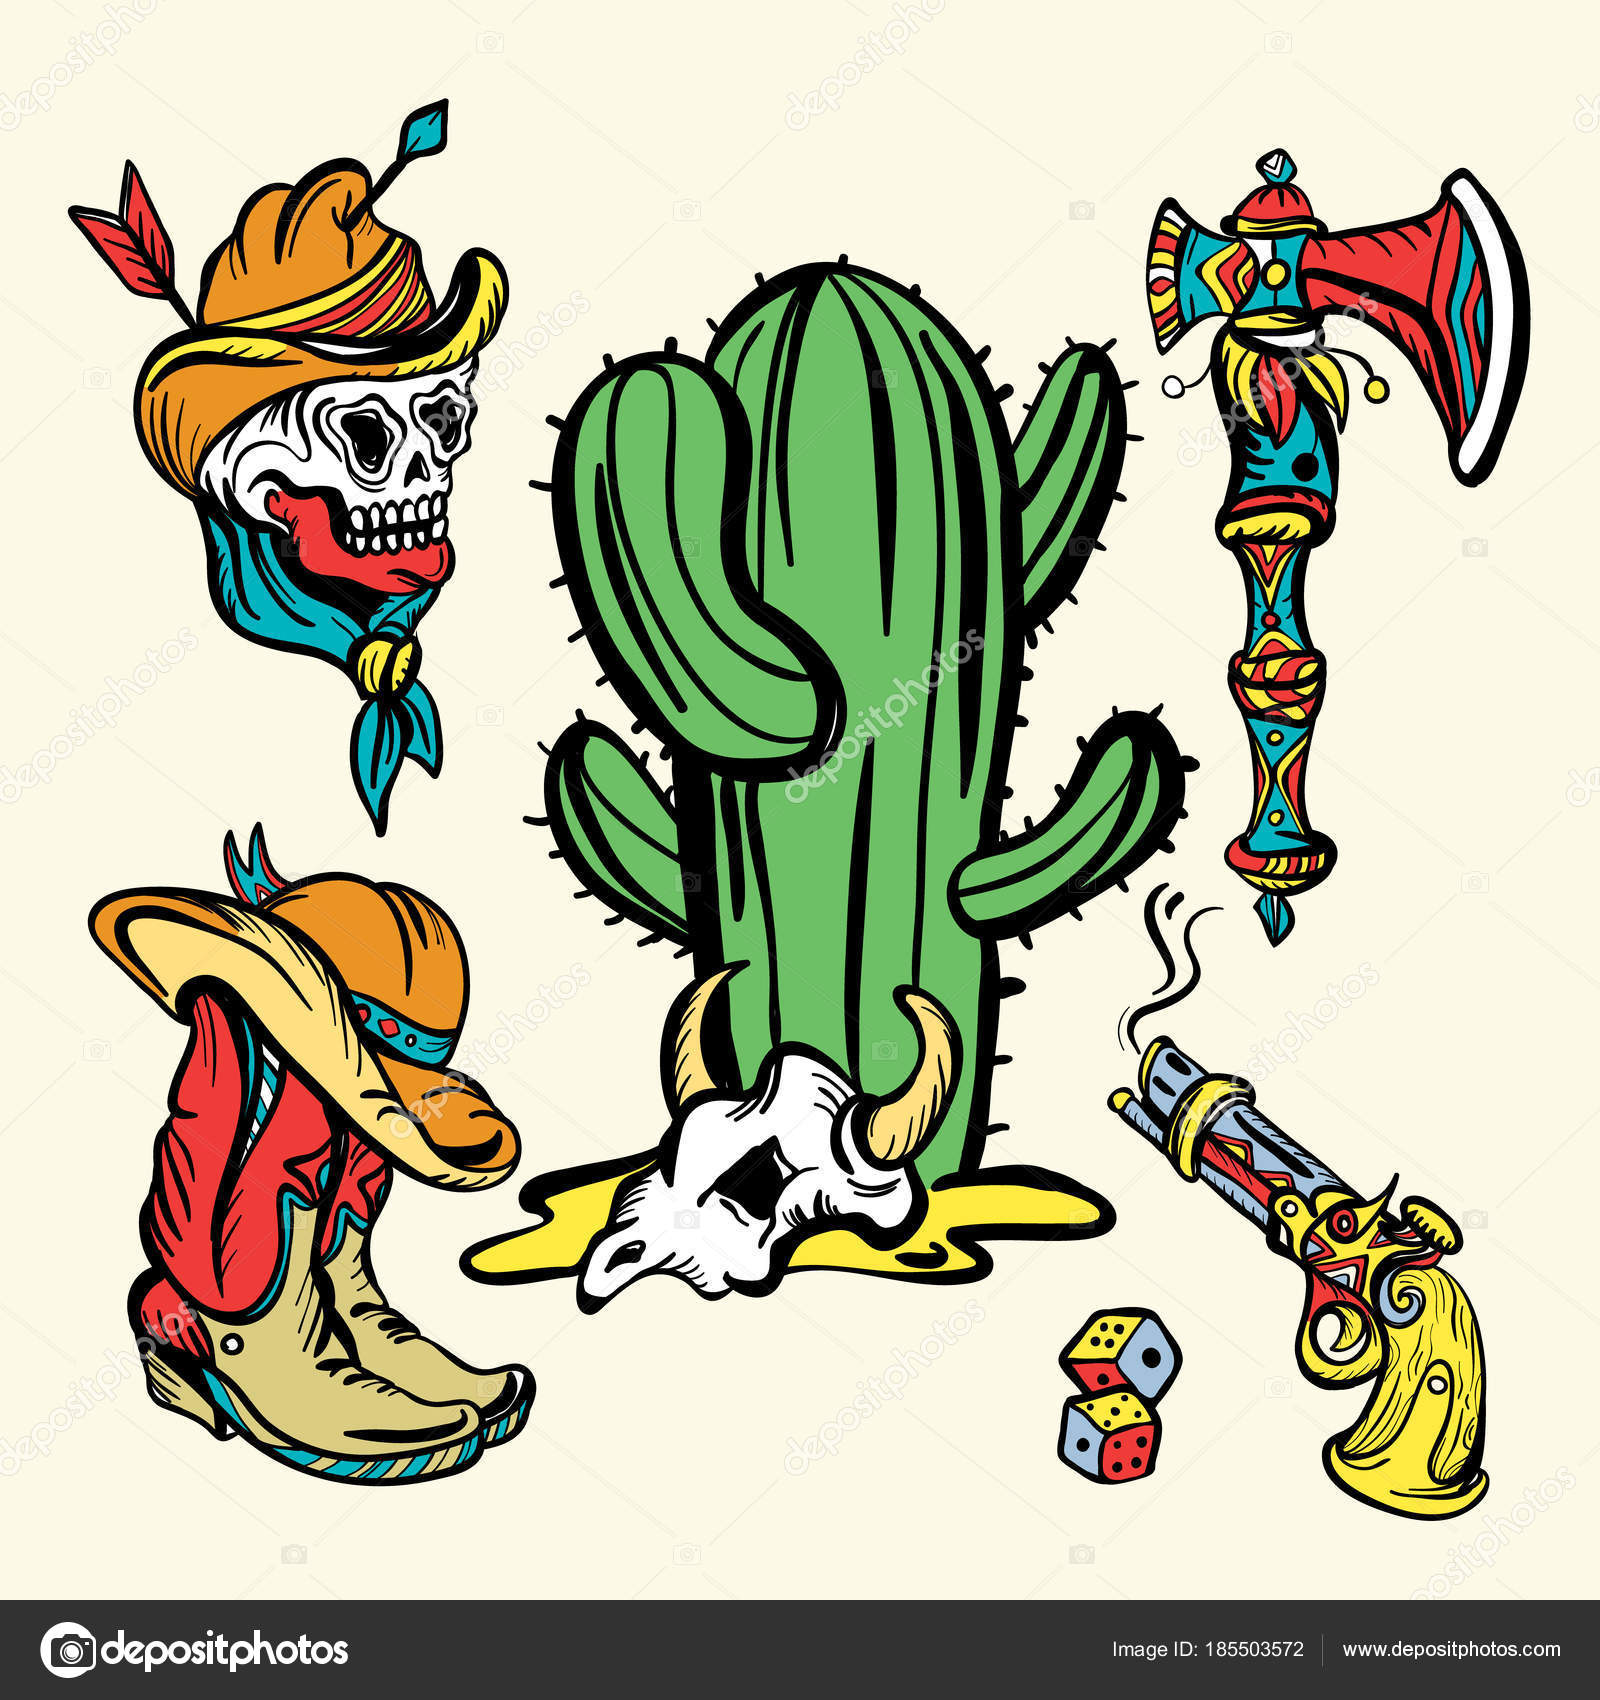 019647cdddcc3 Wild west old school tattoo vector. Fashionable western set. Cowboy,  cactus, guns. Classic flash tattoo style, patches and stickers set — Vector  by nostro